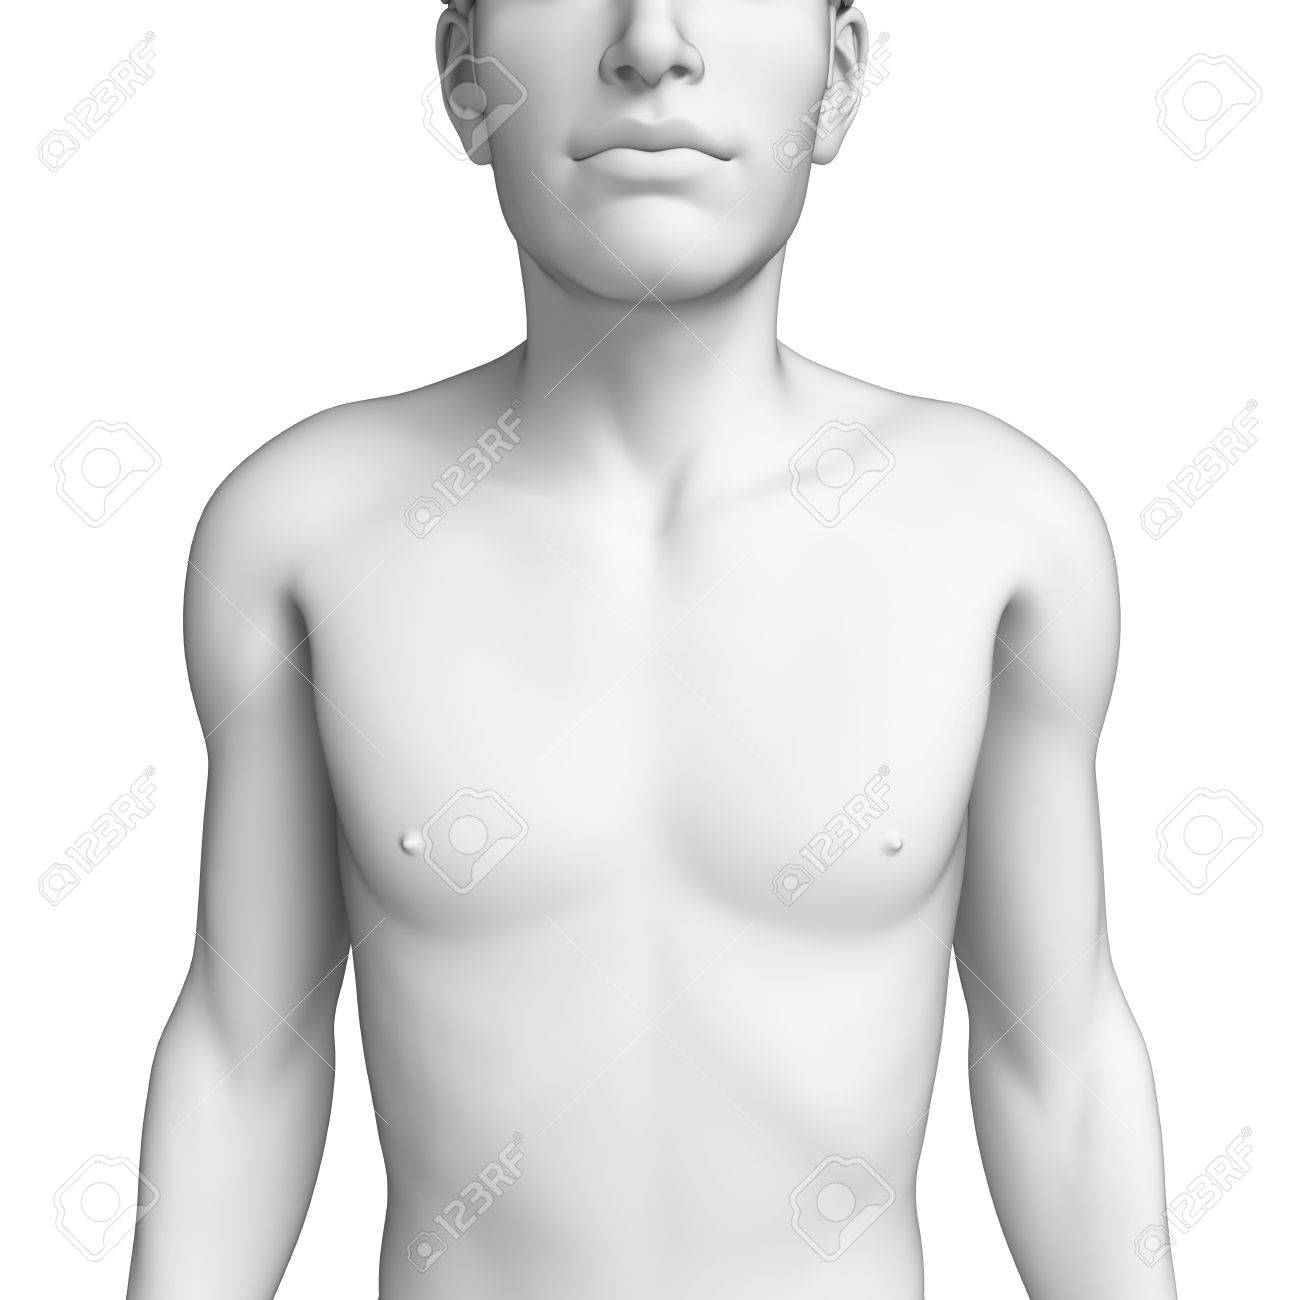 Illustration Of Male Chest Anatomy Artwork Stock Photo Picture And